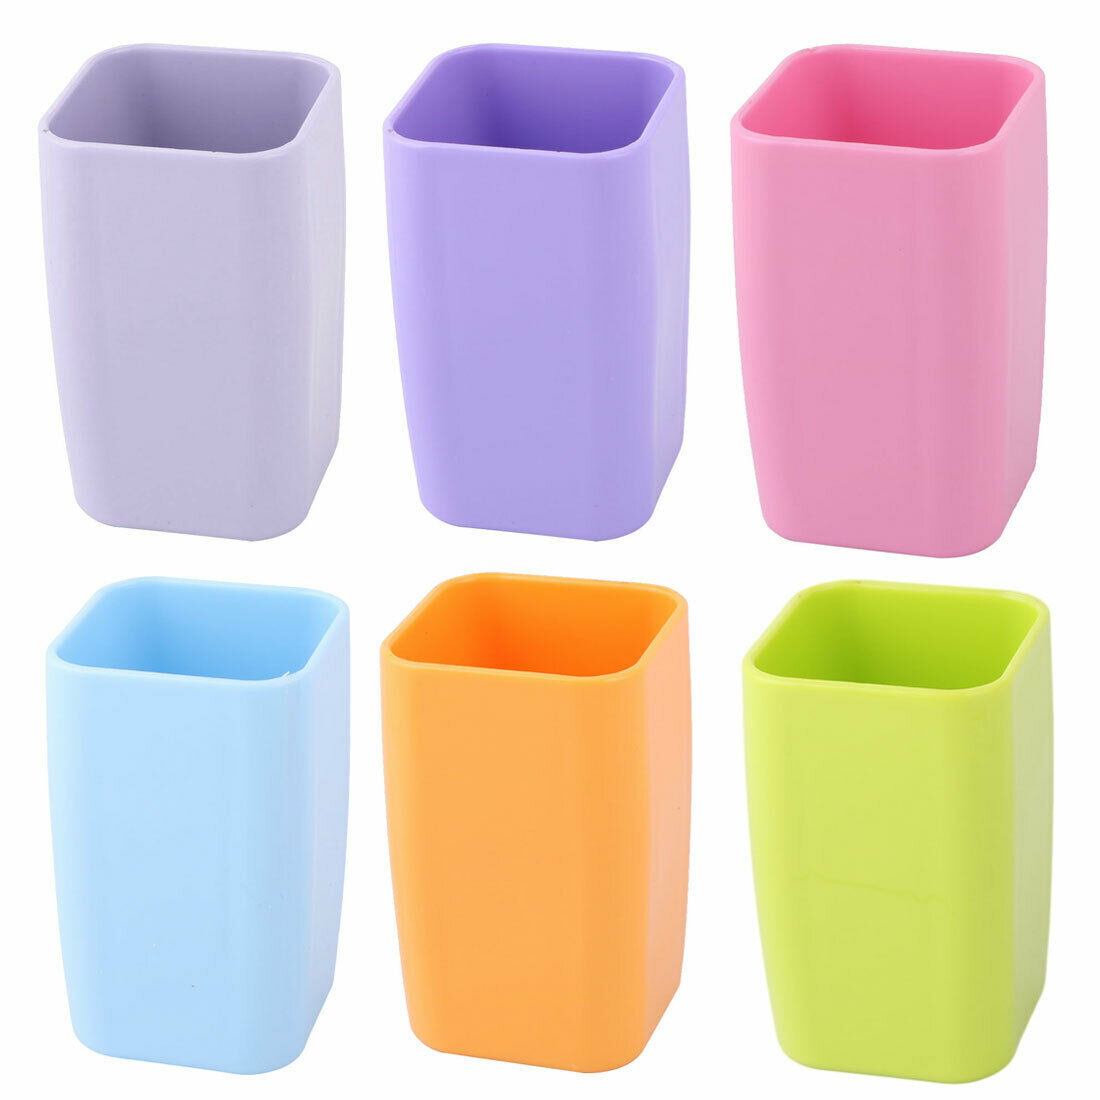 Bathroom Plastic Toothbrush Toothpaste Holder Tooth Cleaning Mug Cup 300ml